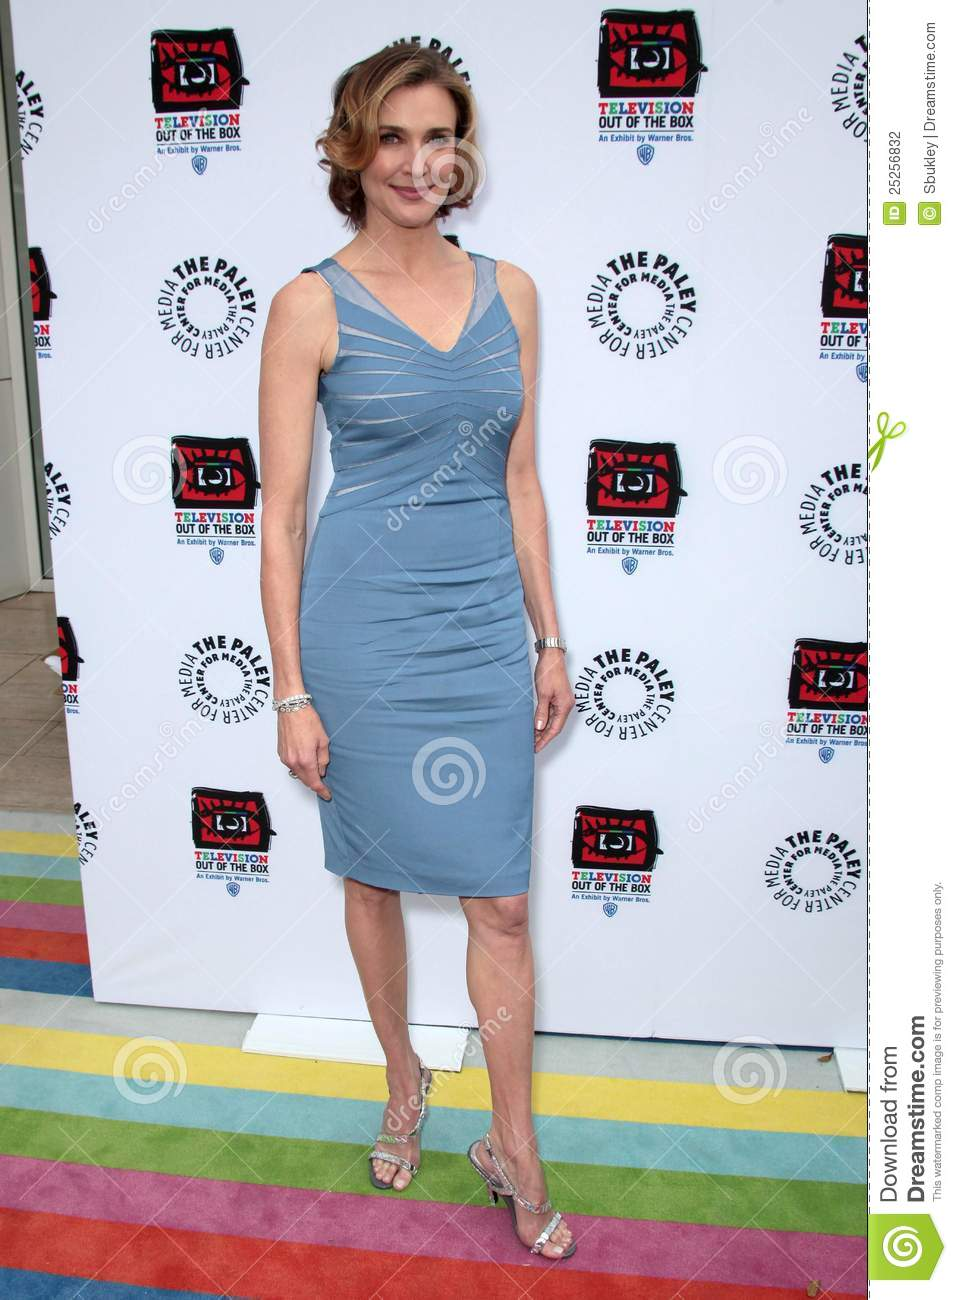 brenda strong nudography